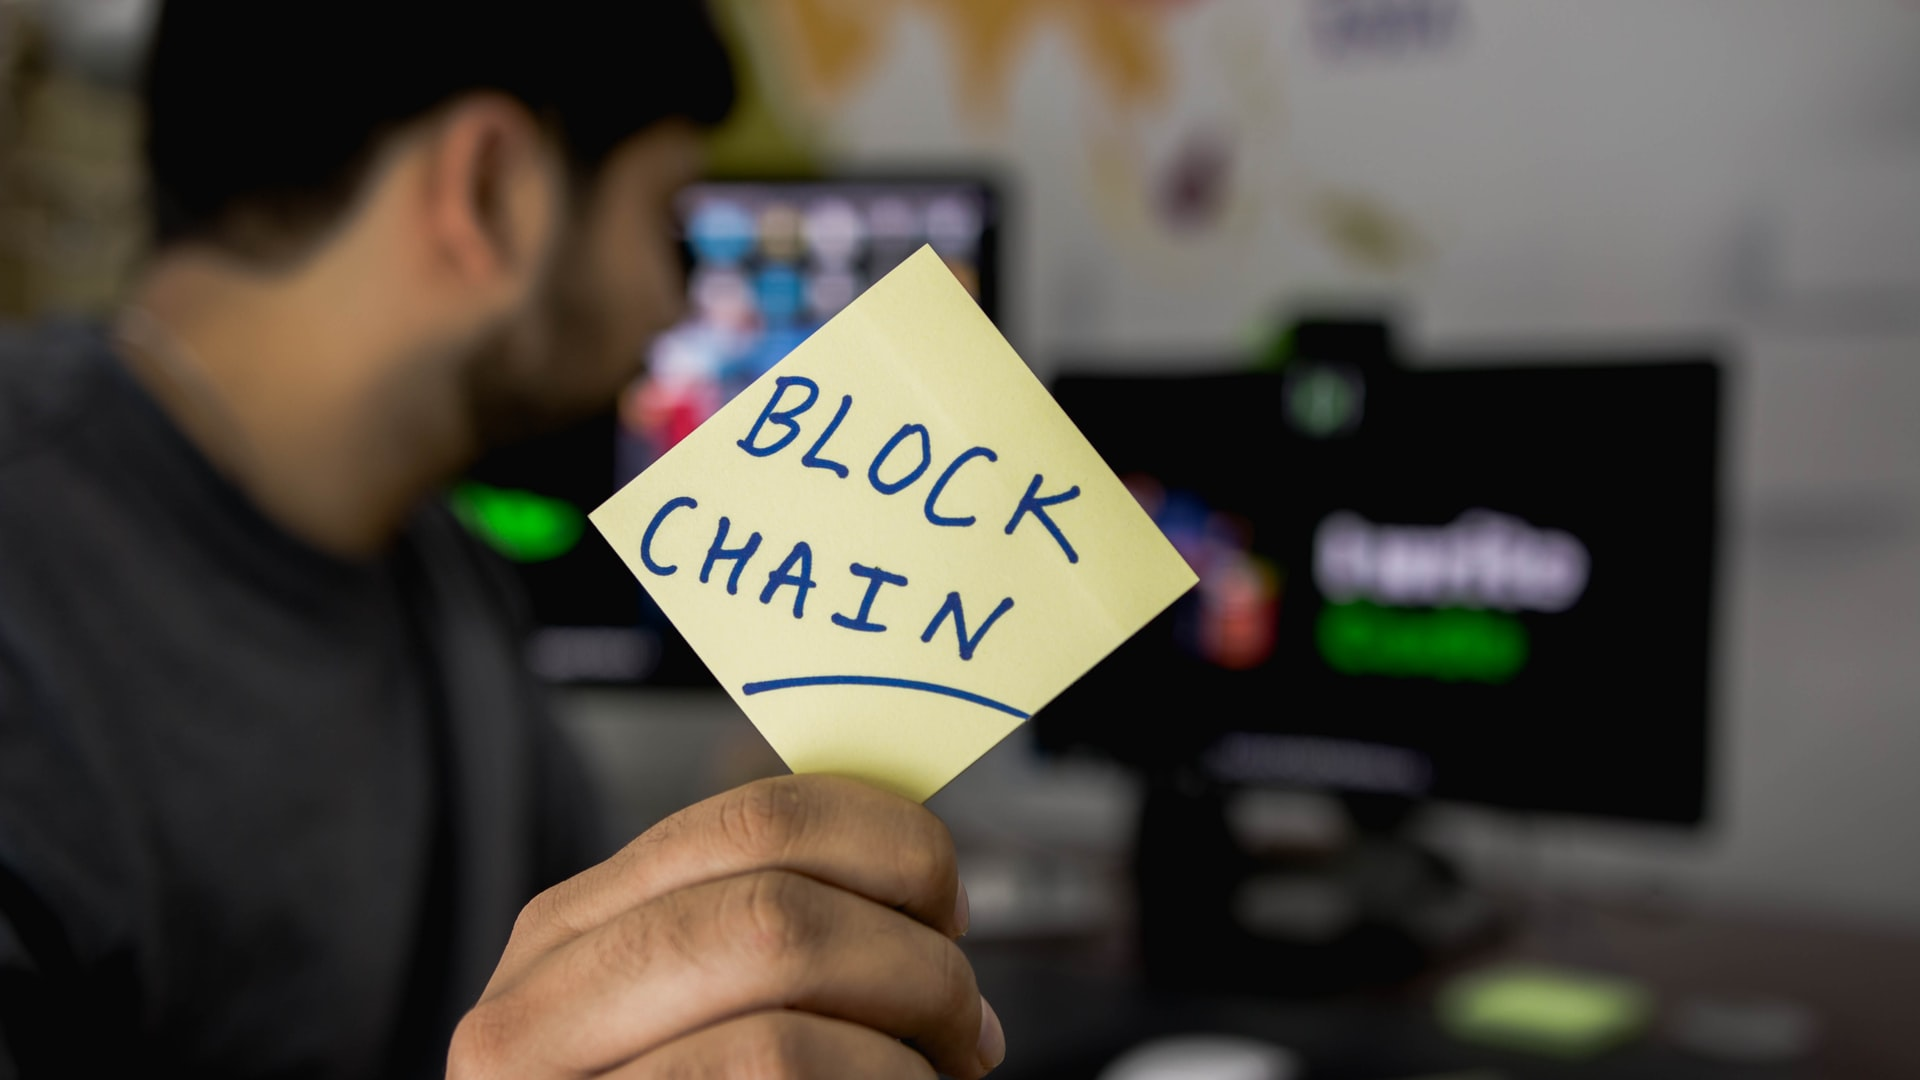 Blockchain Technology Trends to Follow in 2021